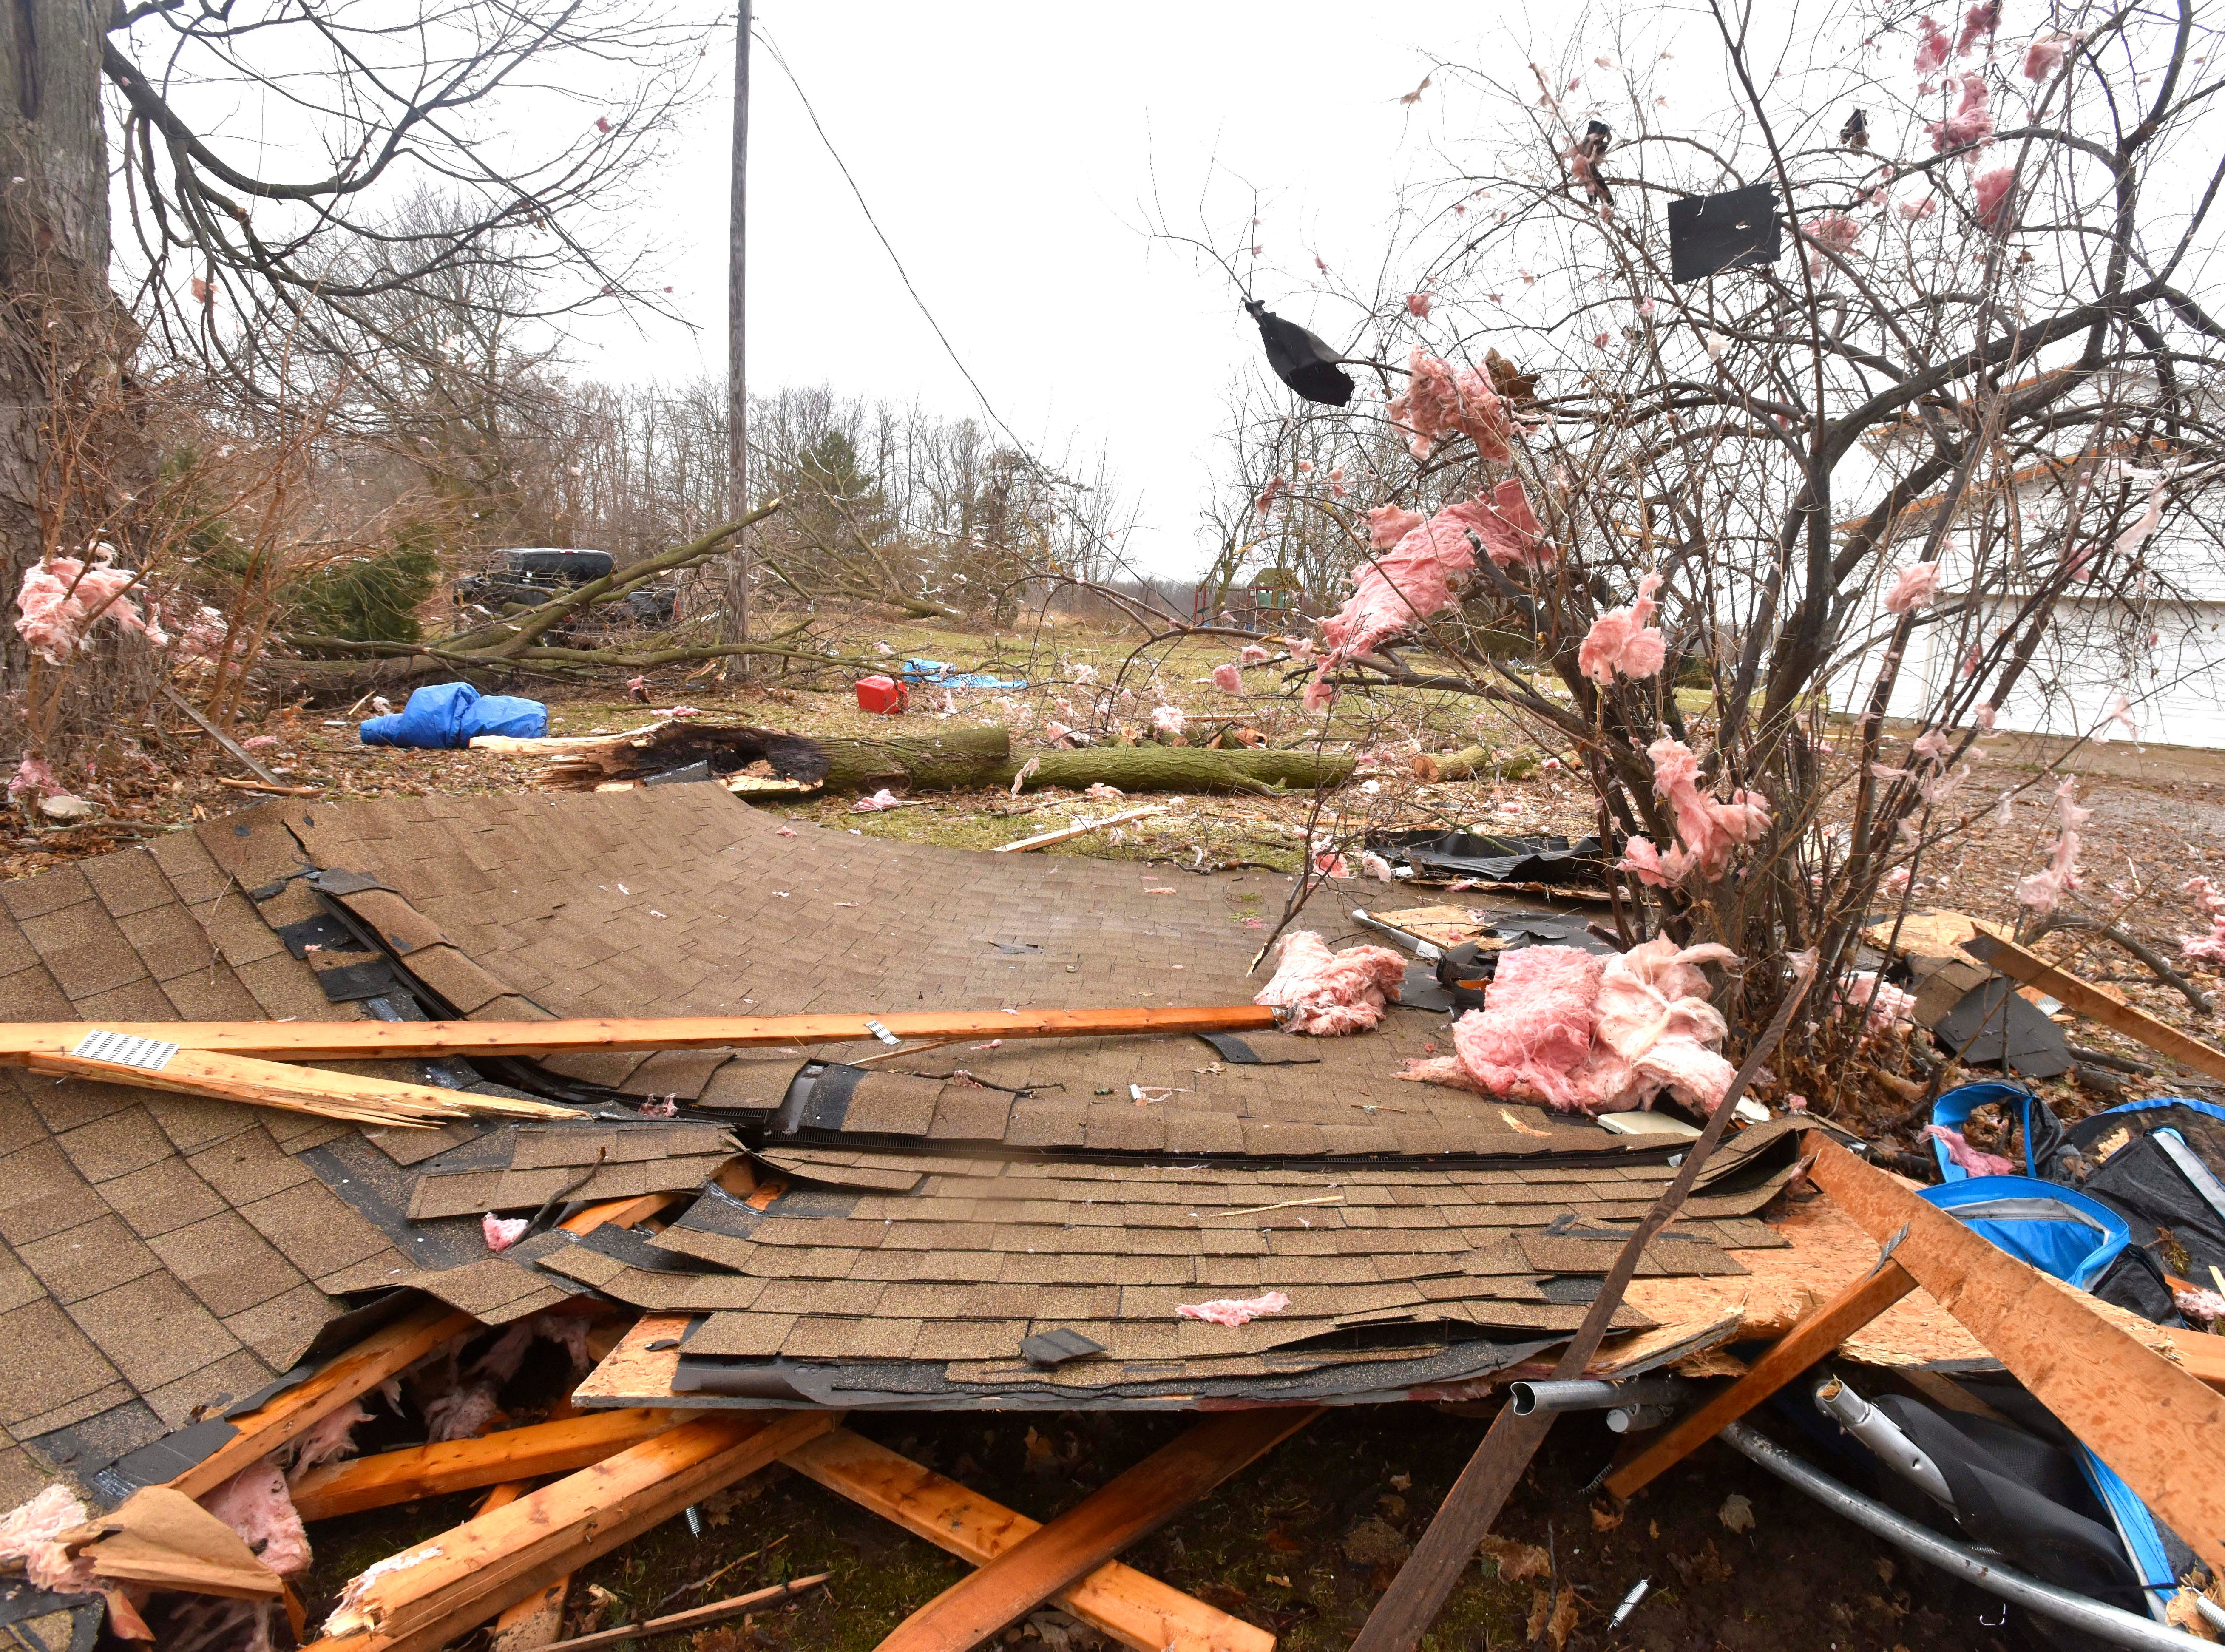 The collapsed roof of a house in Vernon Twp. is seen on the ground with insulation scattered in the trees.damaged by what is believed to have been straight-line winds, the weather service said. Four of the trailers were blown off their foundations, with one of the trailers, that has been vacant for at least a year-and-a-half, wrapped around a tree.